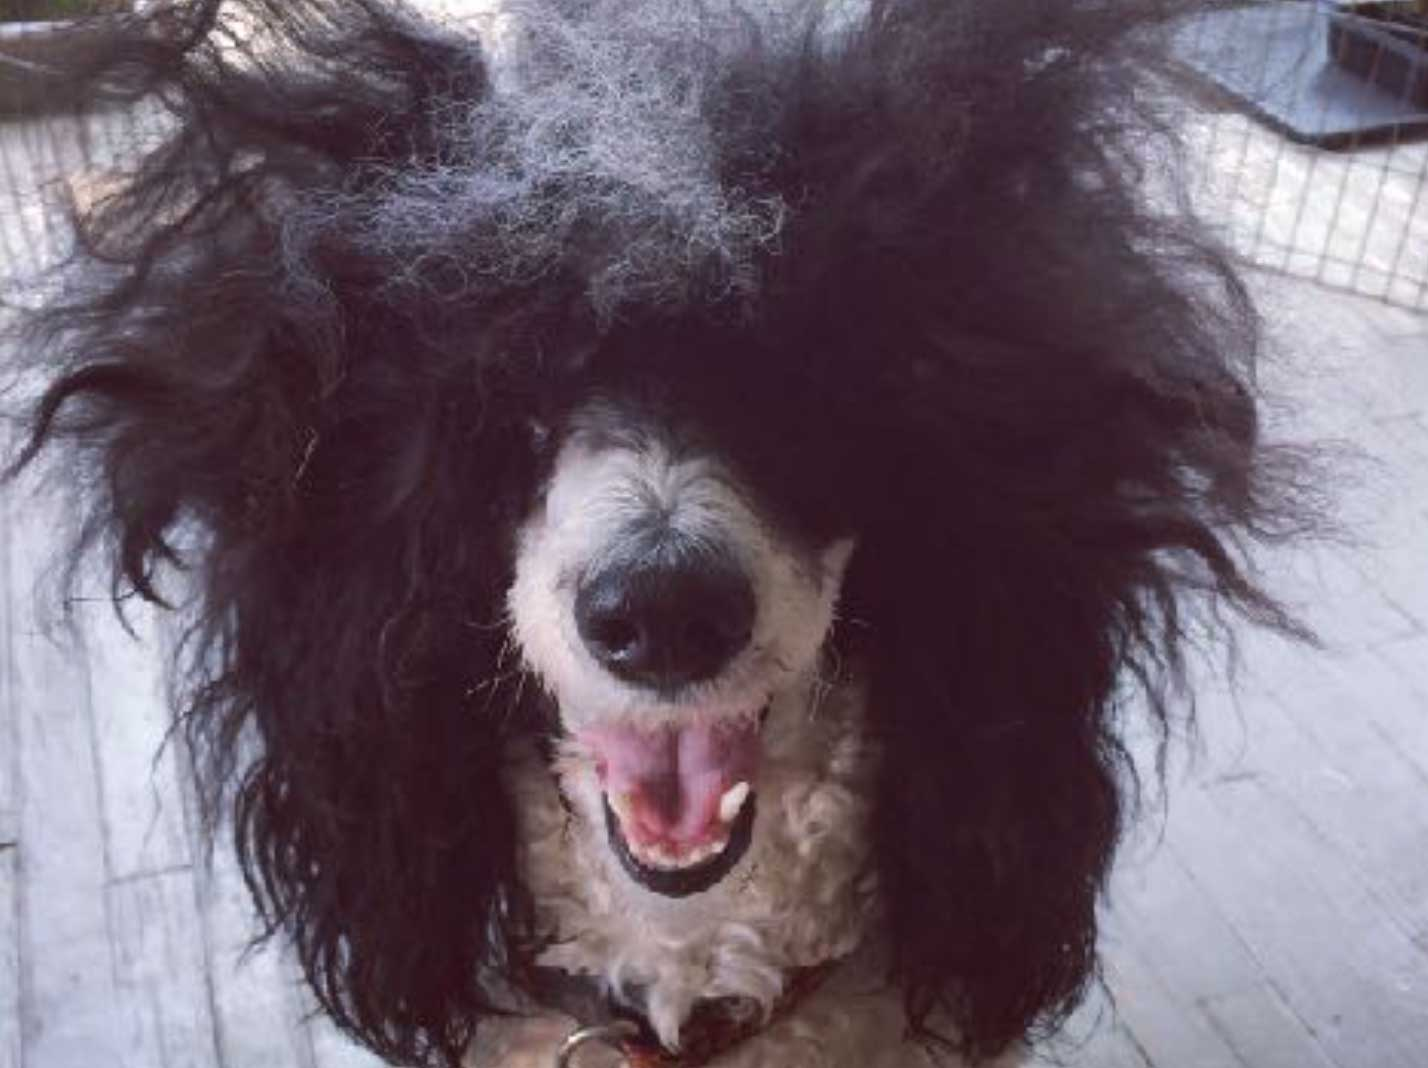 Who needs grooming happy dogs all dogs can benefit from routine grooming you dont need to have a poodle with a show coat to reap the rewards of a professional groomer solutioingenieria Choice Image